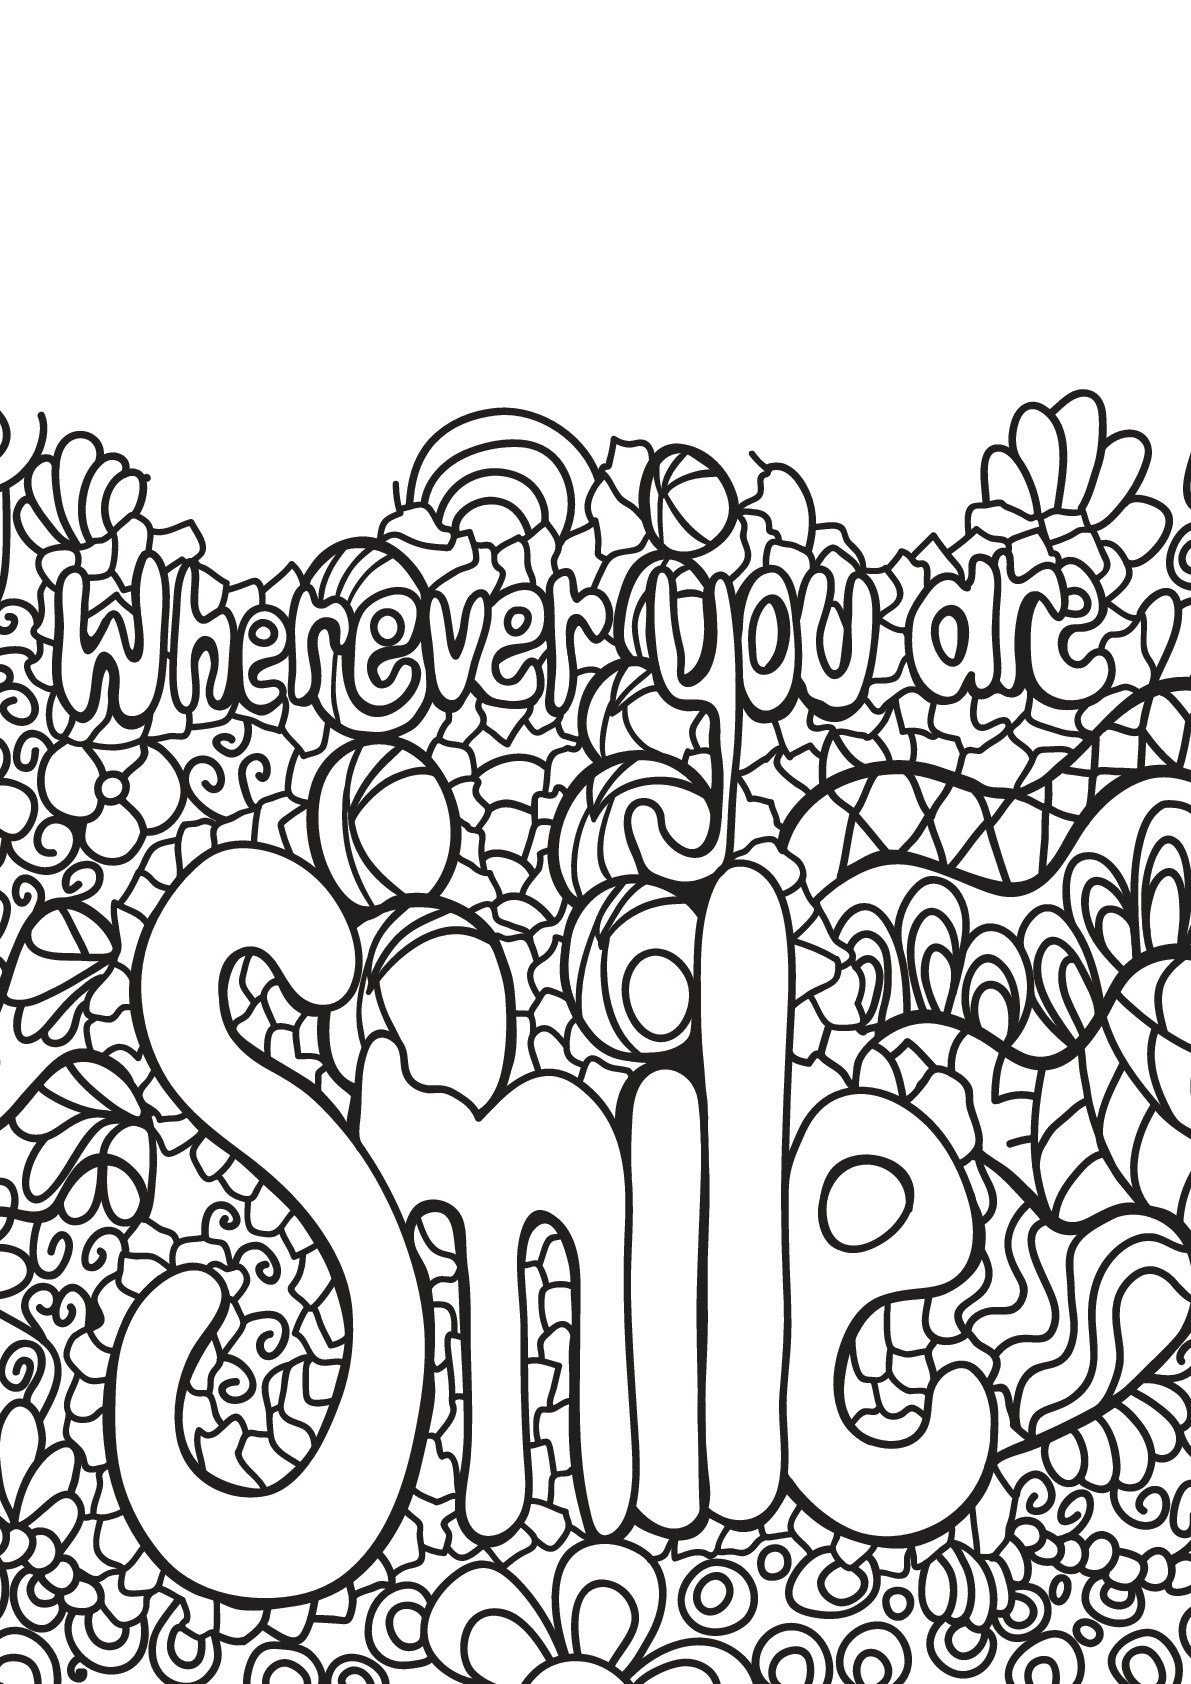 Free book quote 3 - Quotes Adult Coloring Pages | printable coloring pages for adults quotes